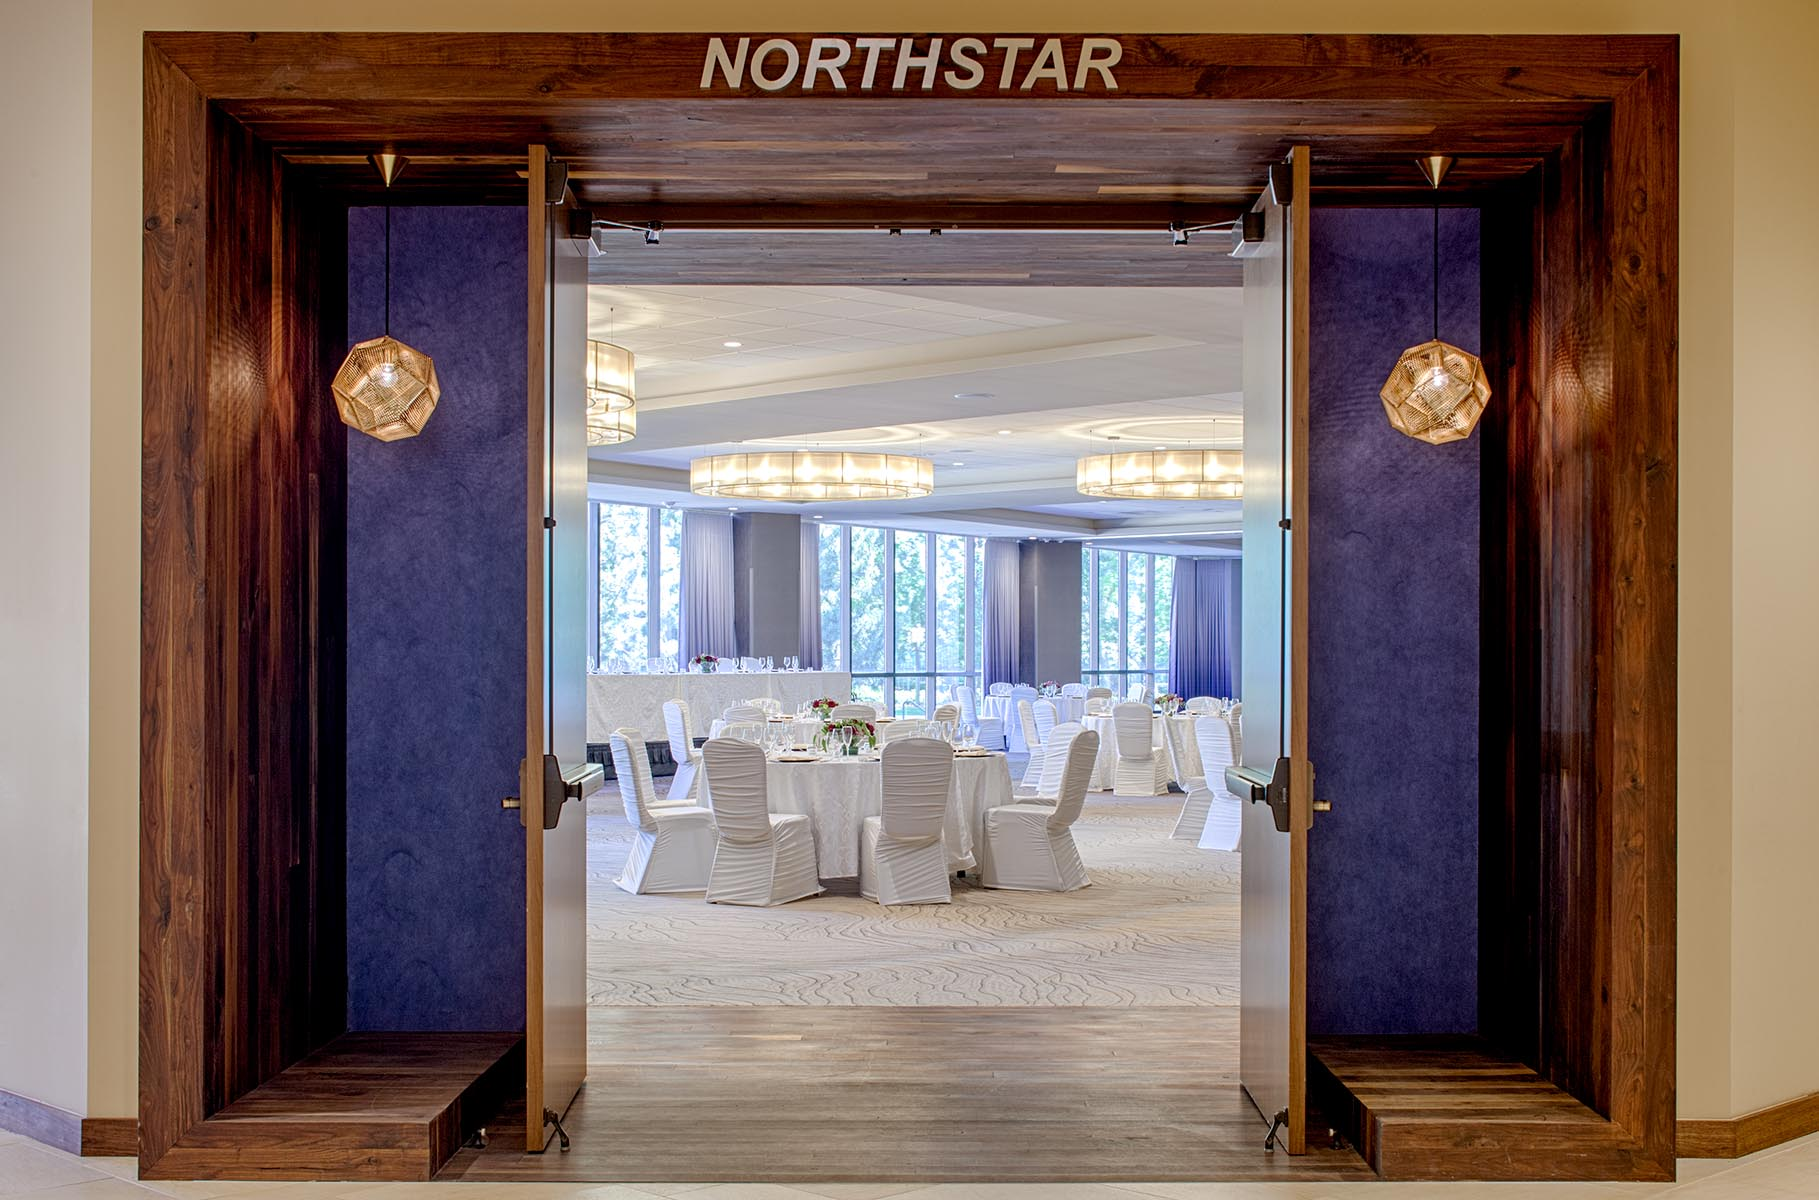 northstar-ballroom-entry-detail